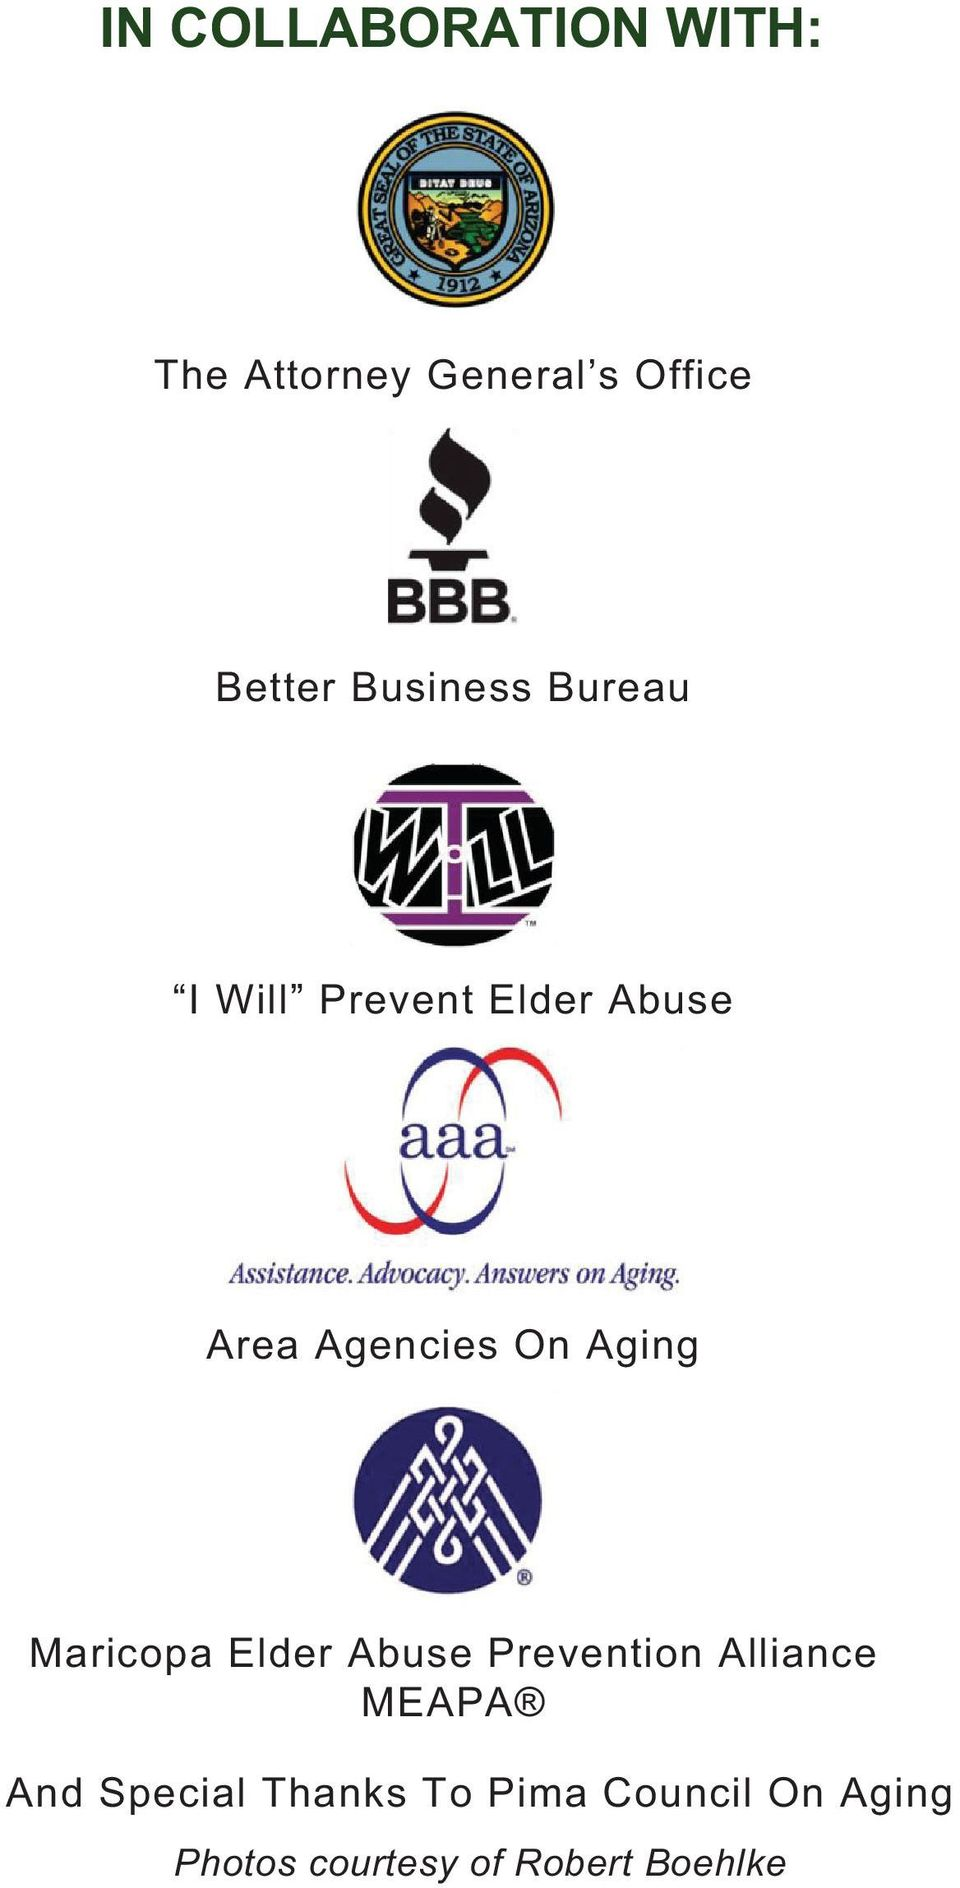 Aging Maricopa Elder Abuse Prevention Alliance MEAPA And